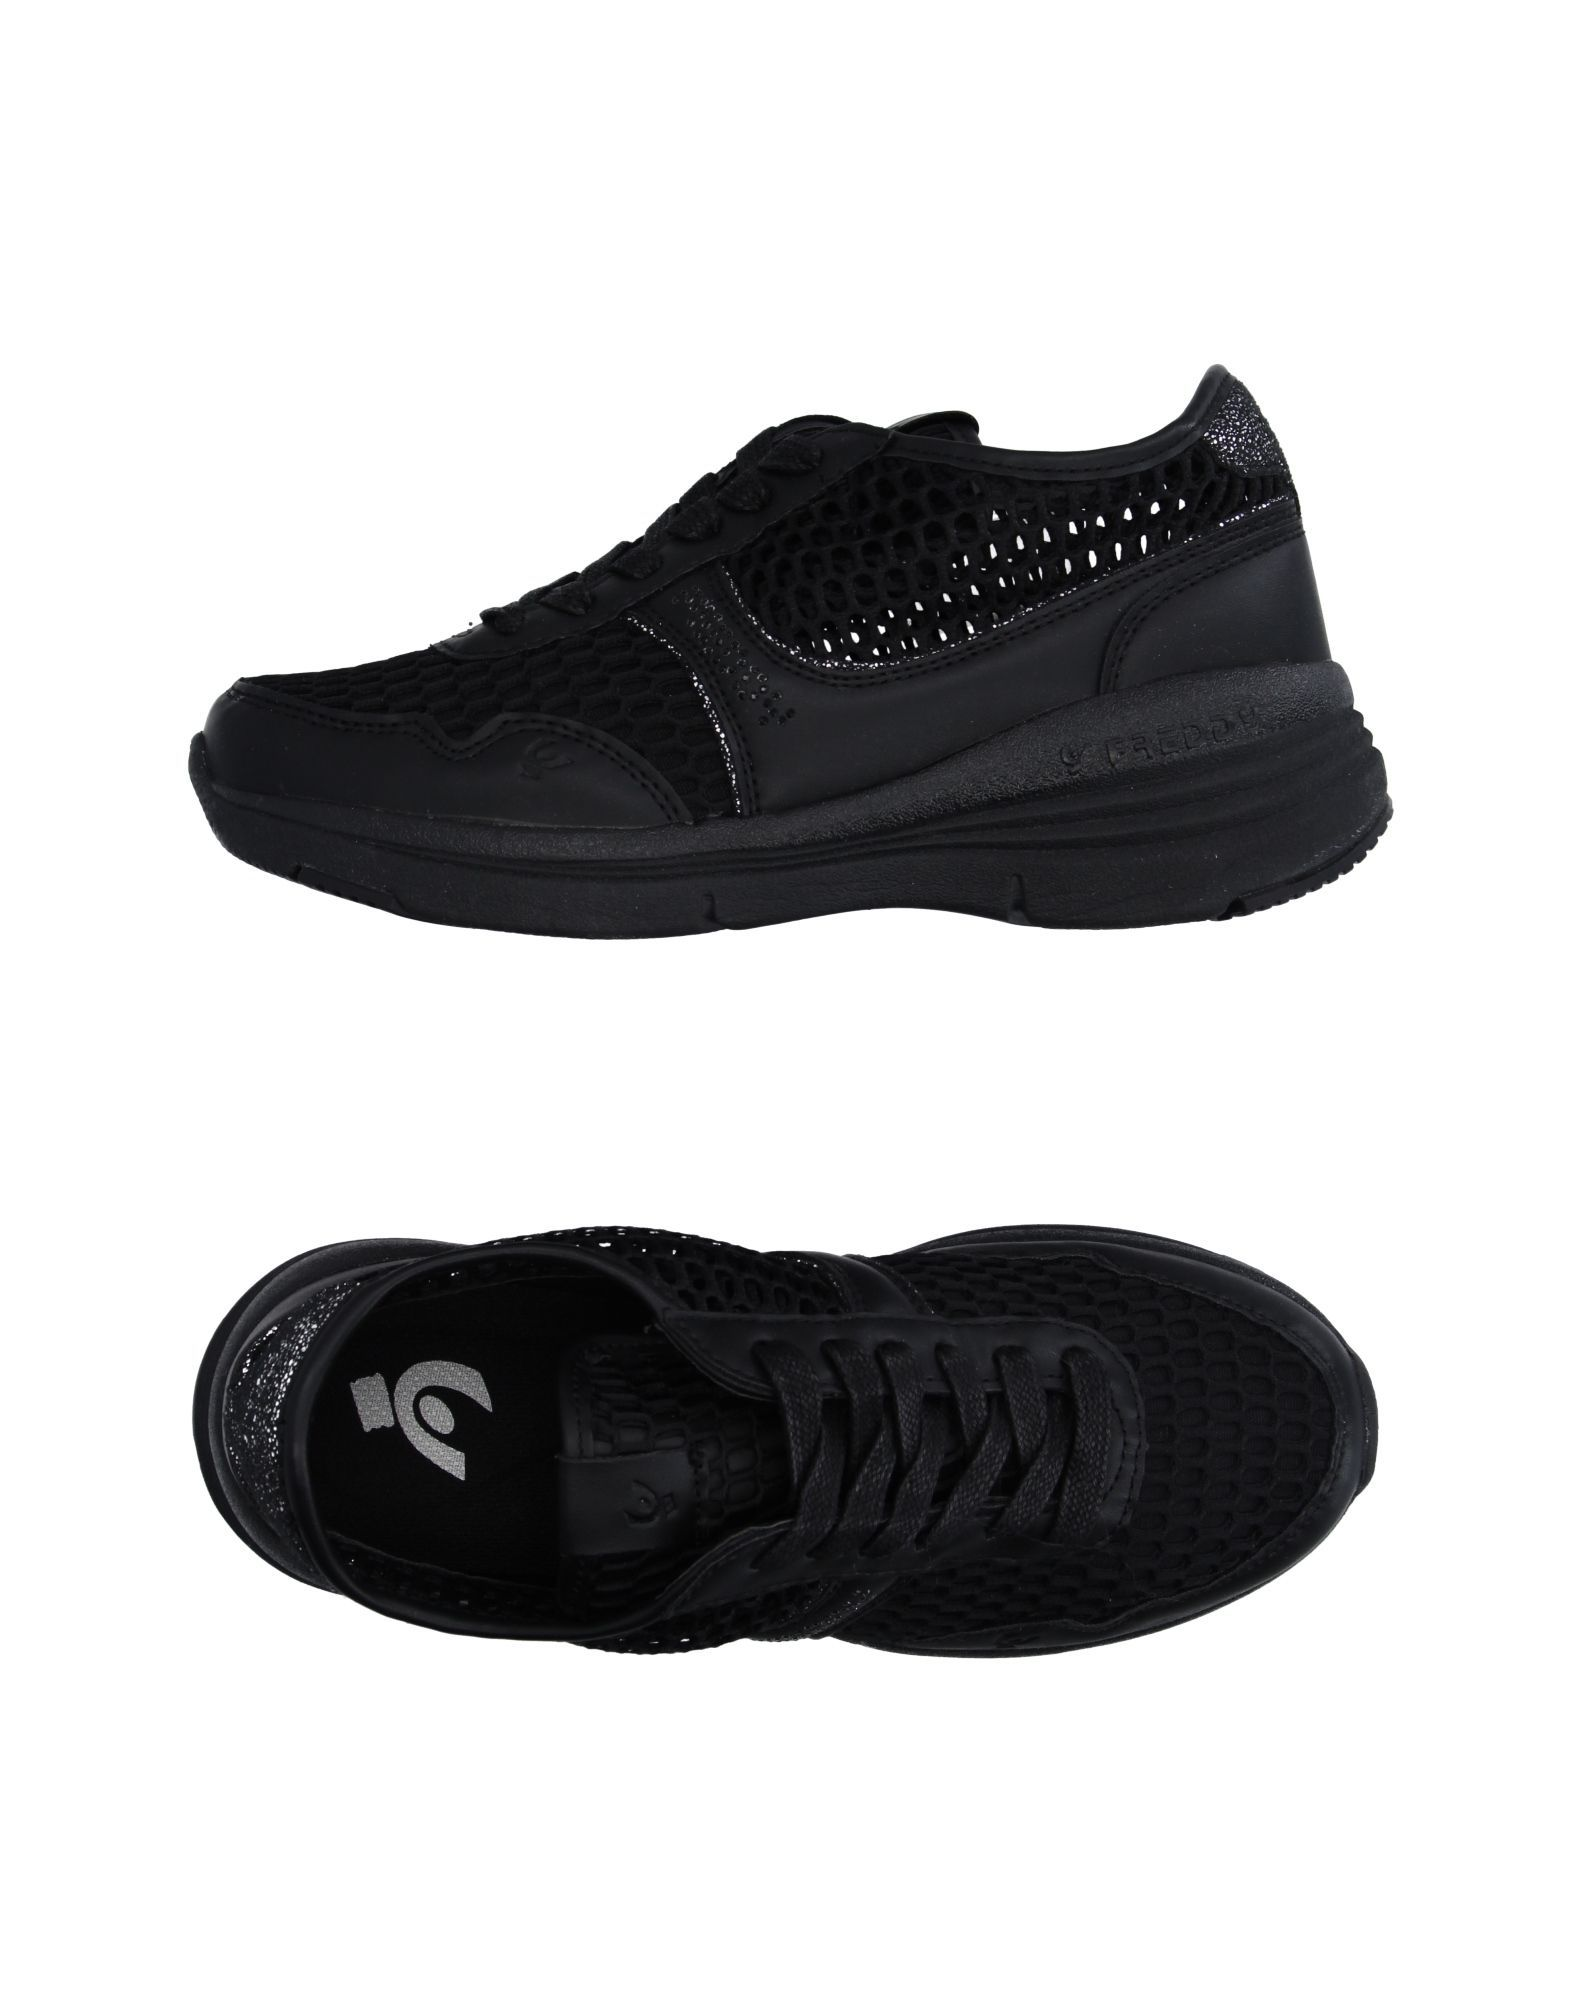 439caeb332 FREDDY . #freddy #shoes # | Freddy | Sneakers, Shoes sneakers, Shoes